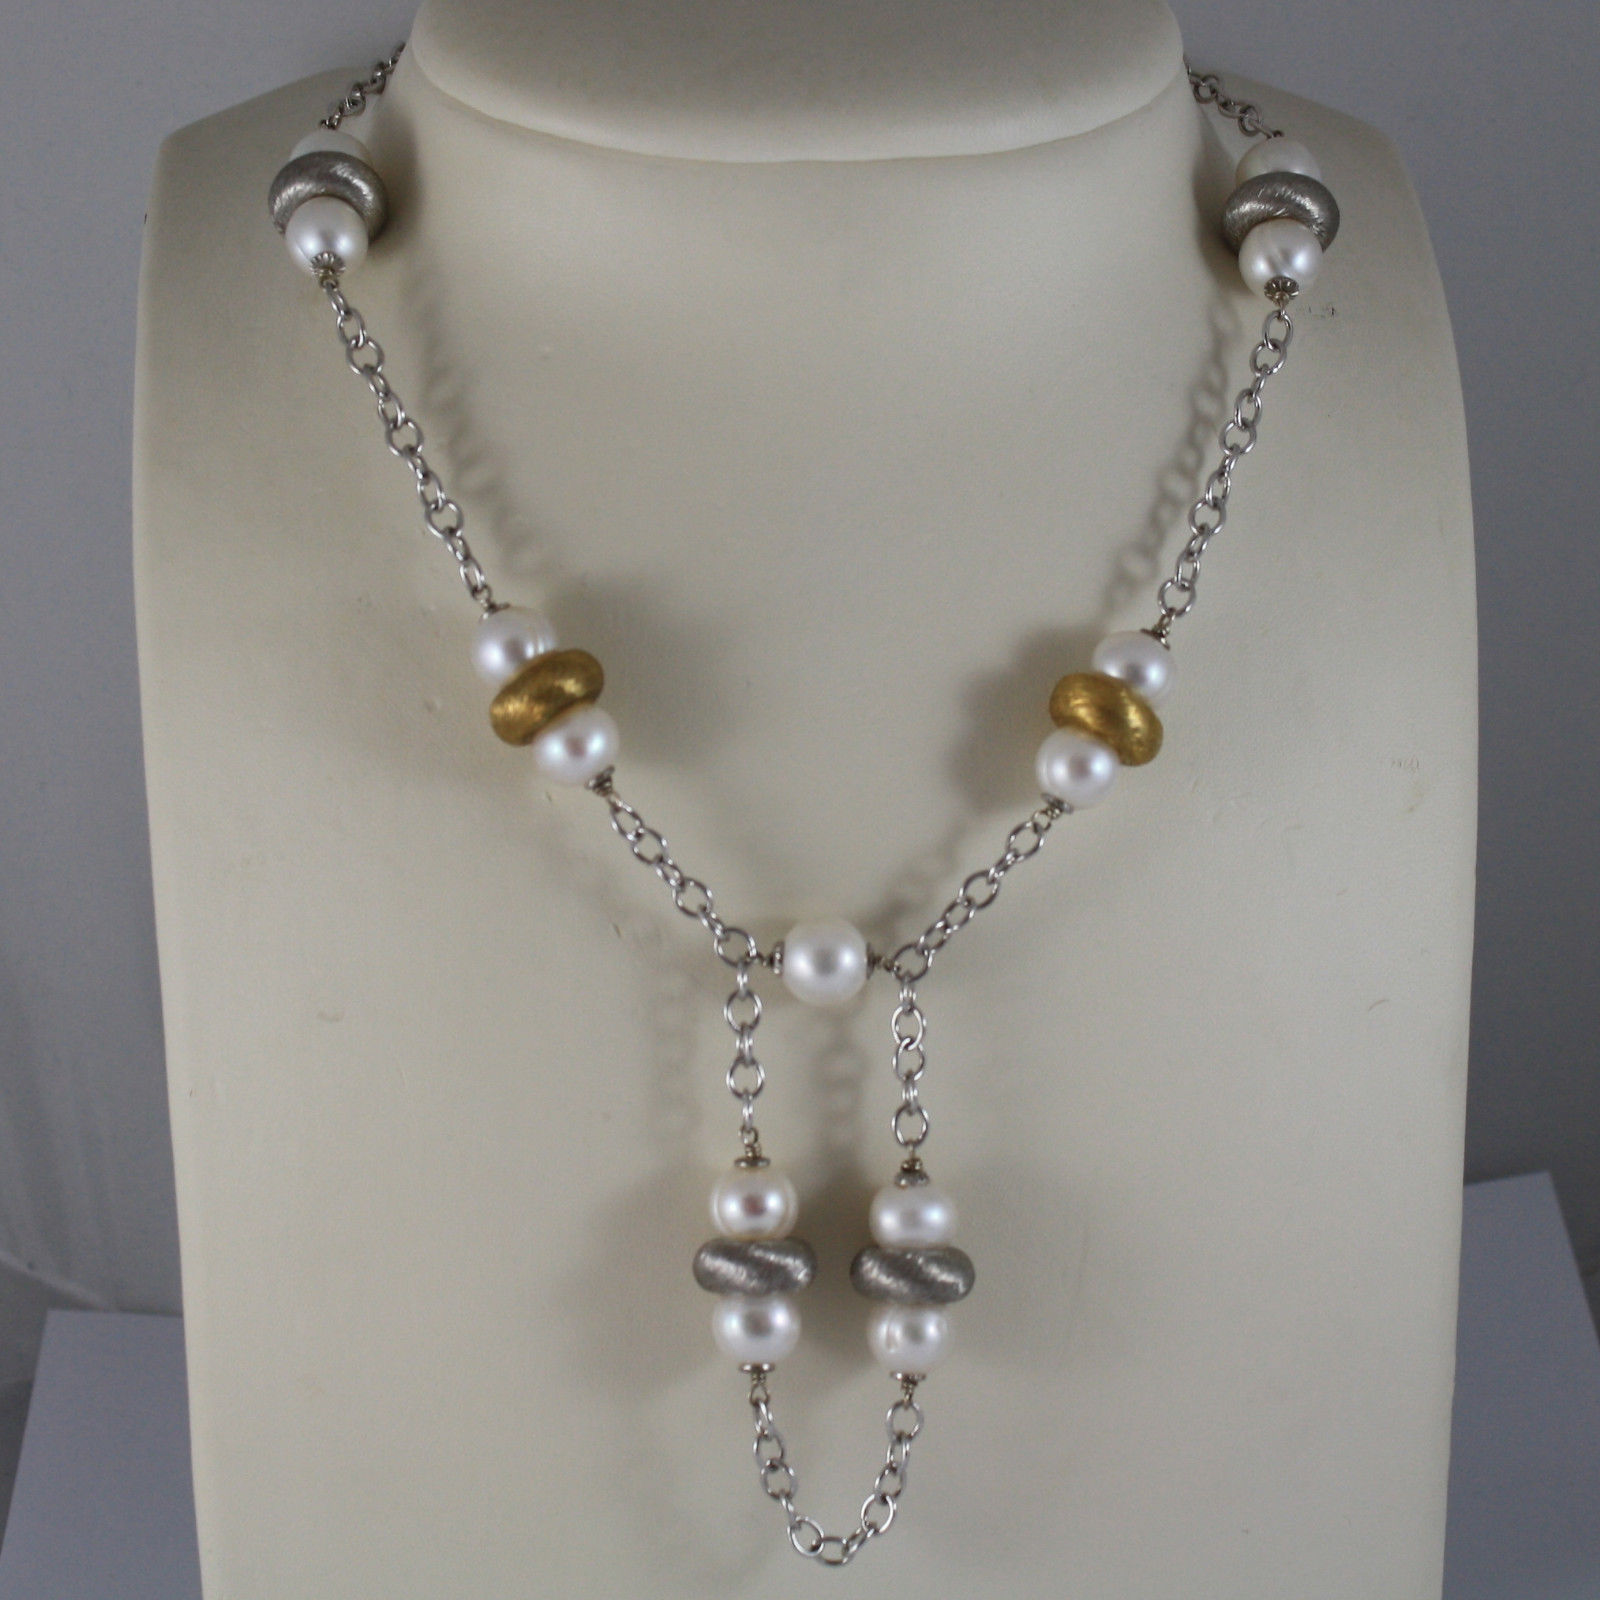 .925 RHODIUM SILVER NECKLACE WITH WHITE PEARLS AND YELLOW GOLD PLATED DISC